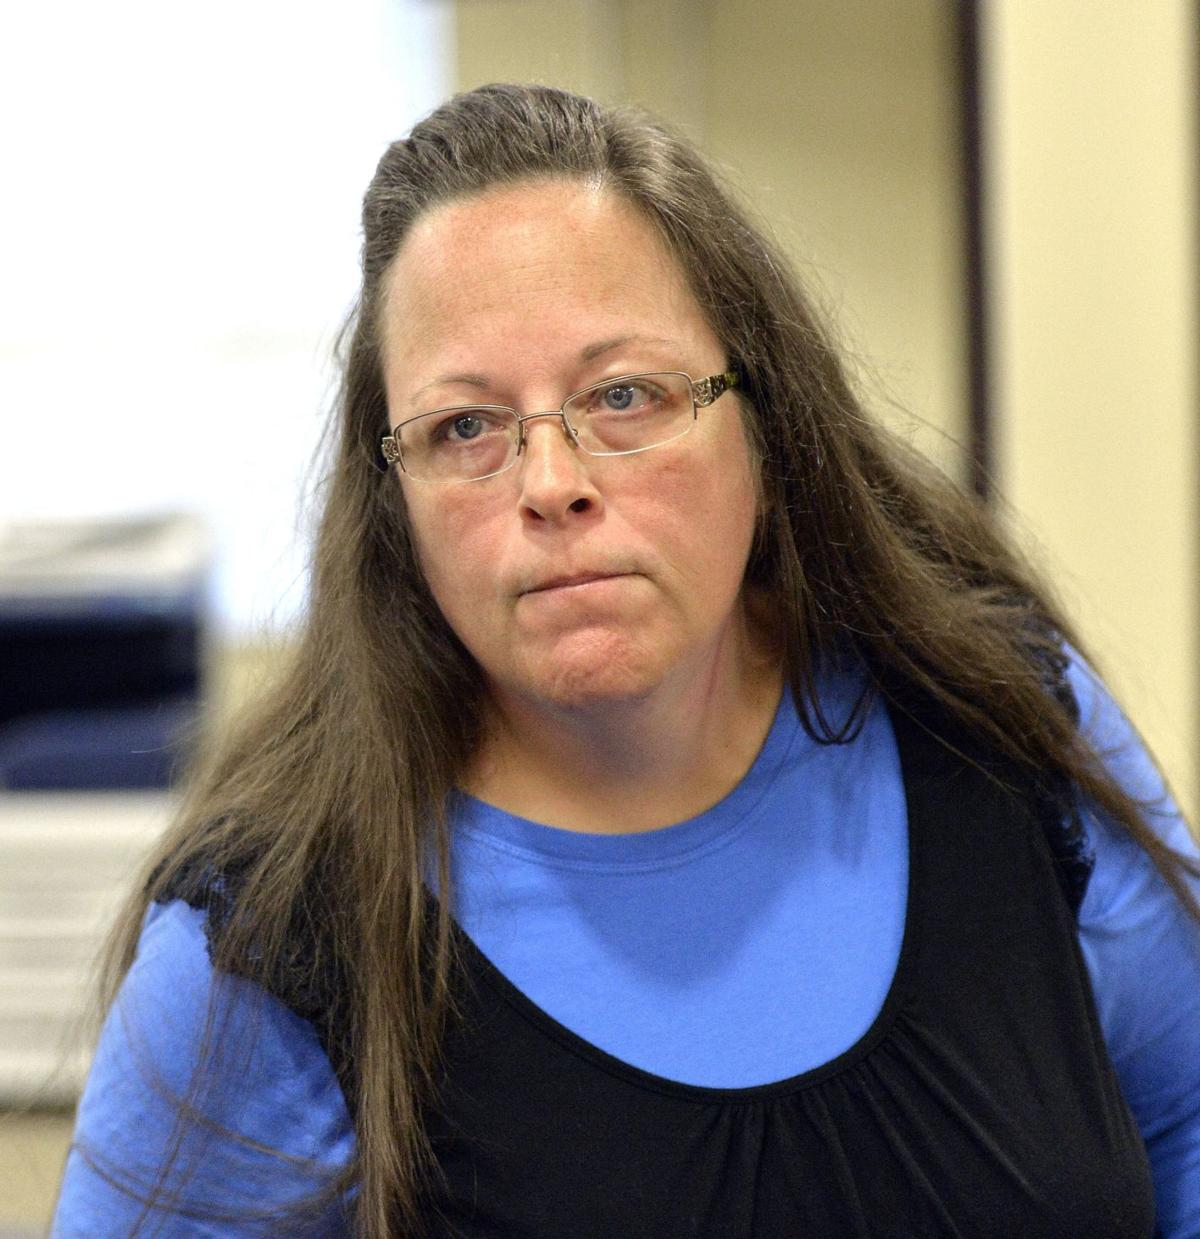 Clerk jailed for keeping licenses from gay couples